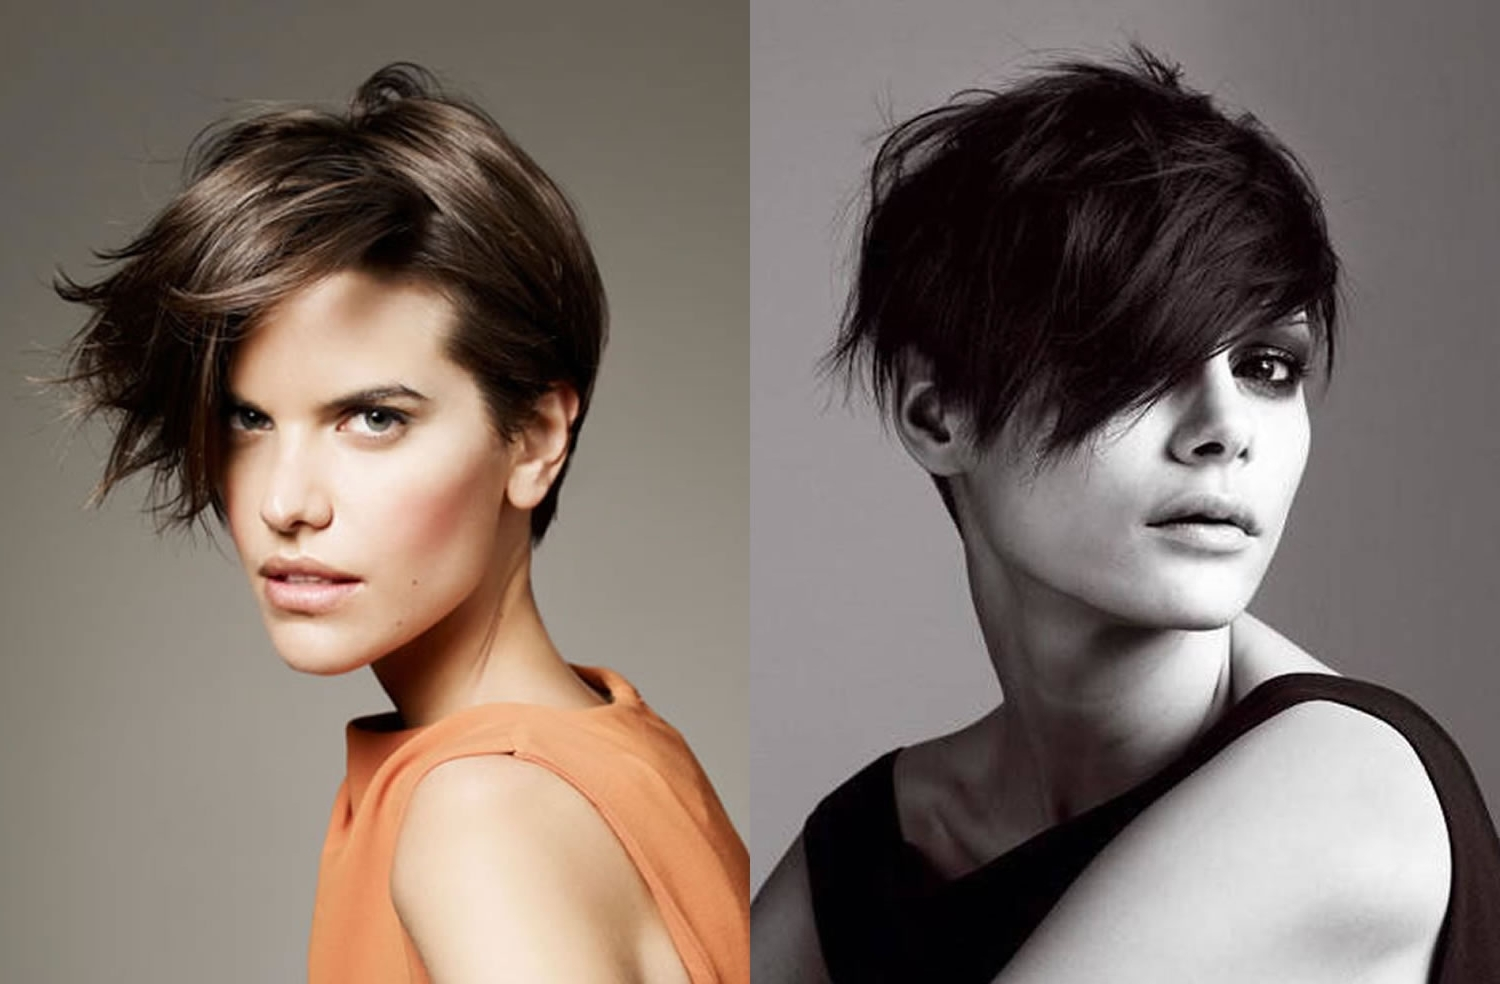 Top 70 Beautiful Short Haircuts For Women 2017 2018 | Images+ Pertaining To Most Current Hot Pixie Hairstyles (View 6 of 15)